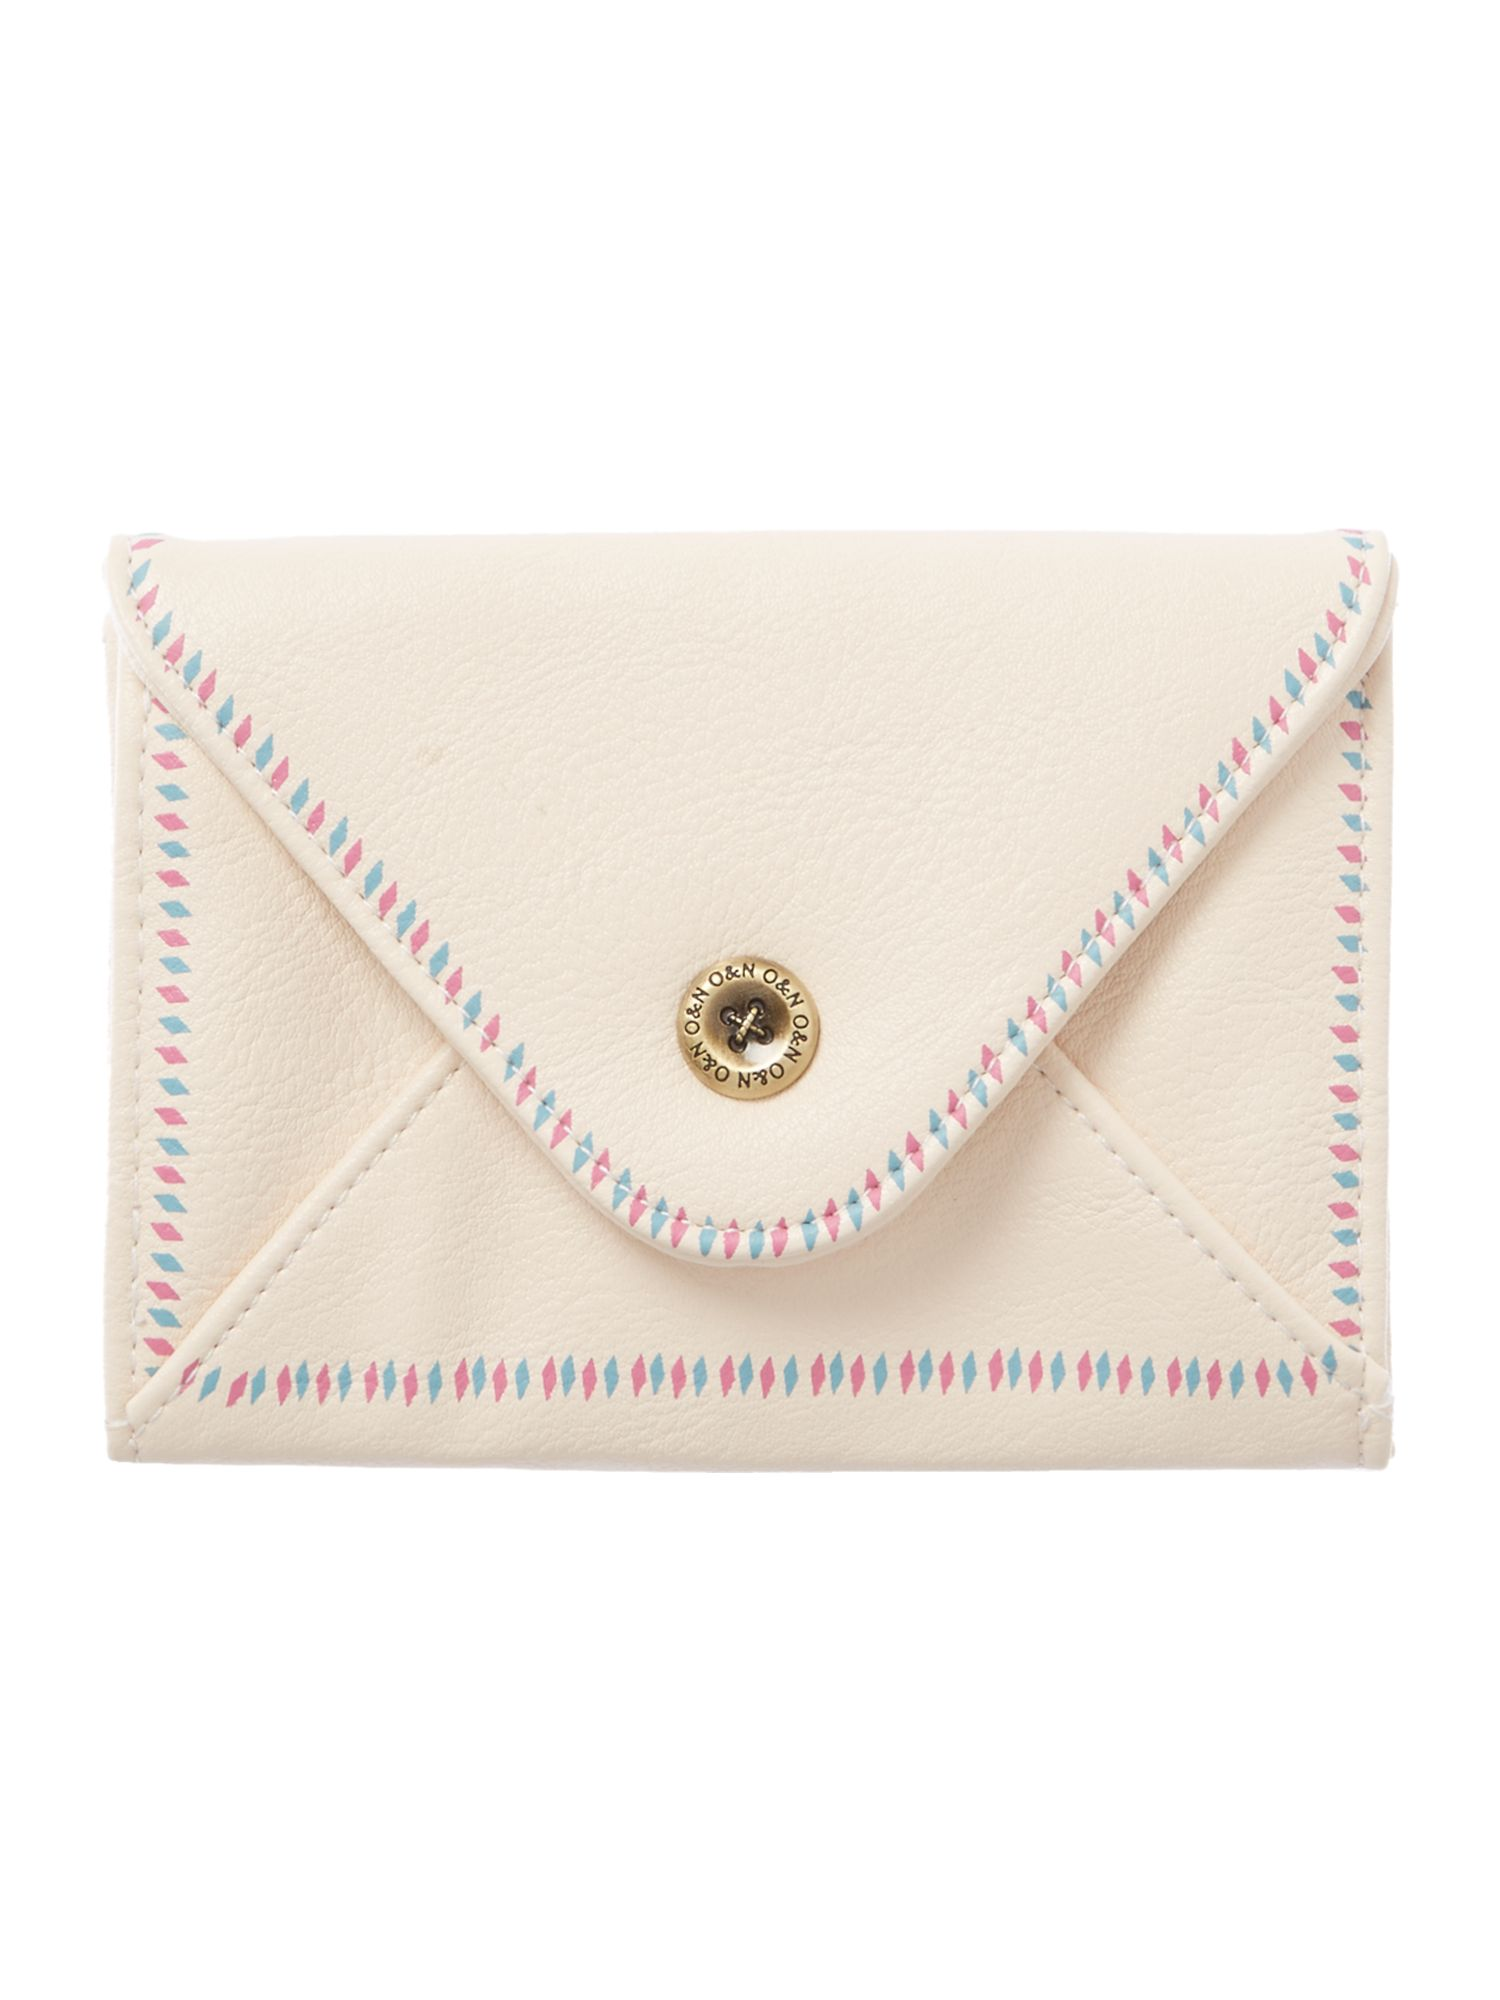 Hathaway cream small flapover purse